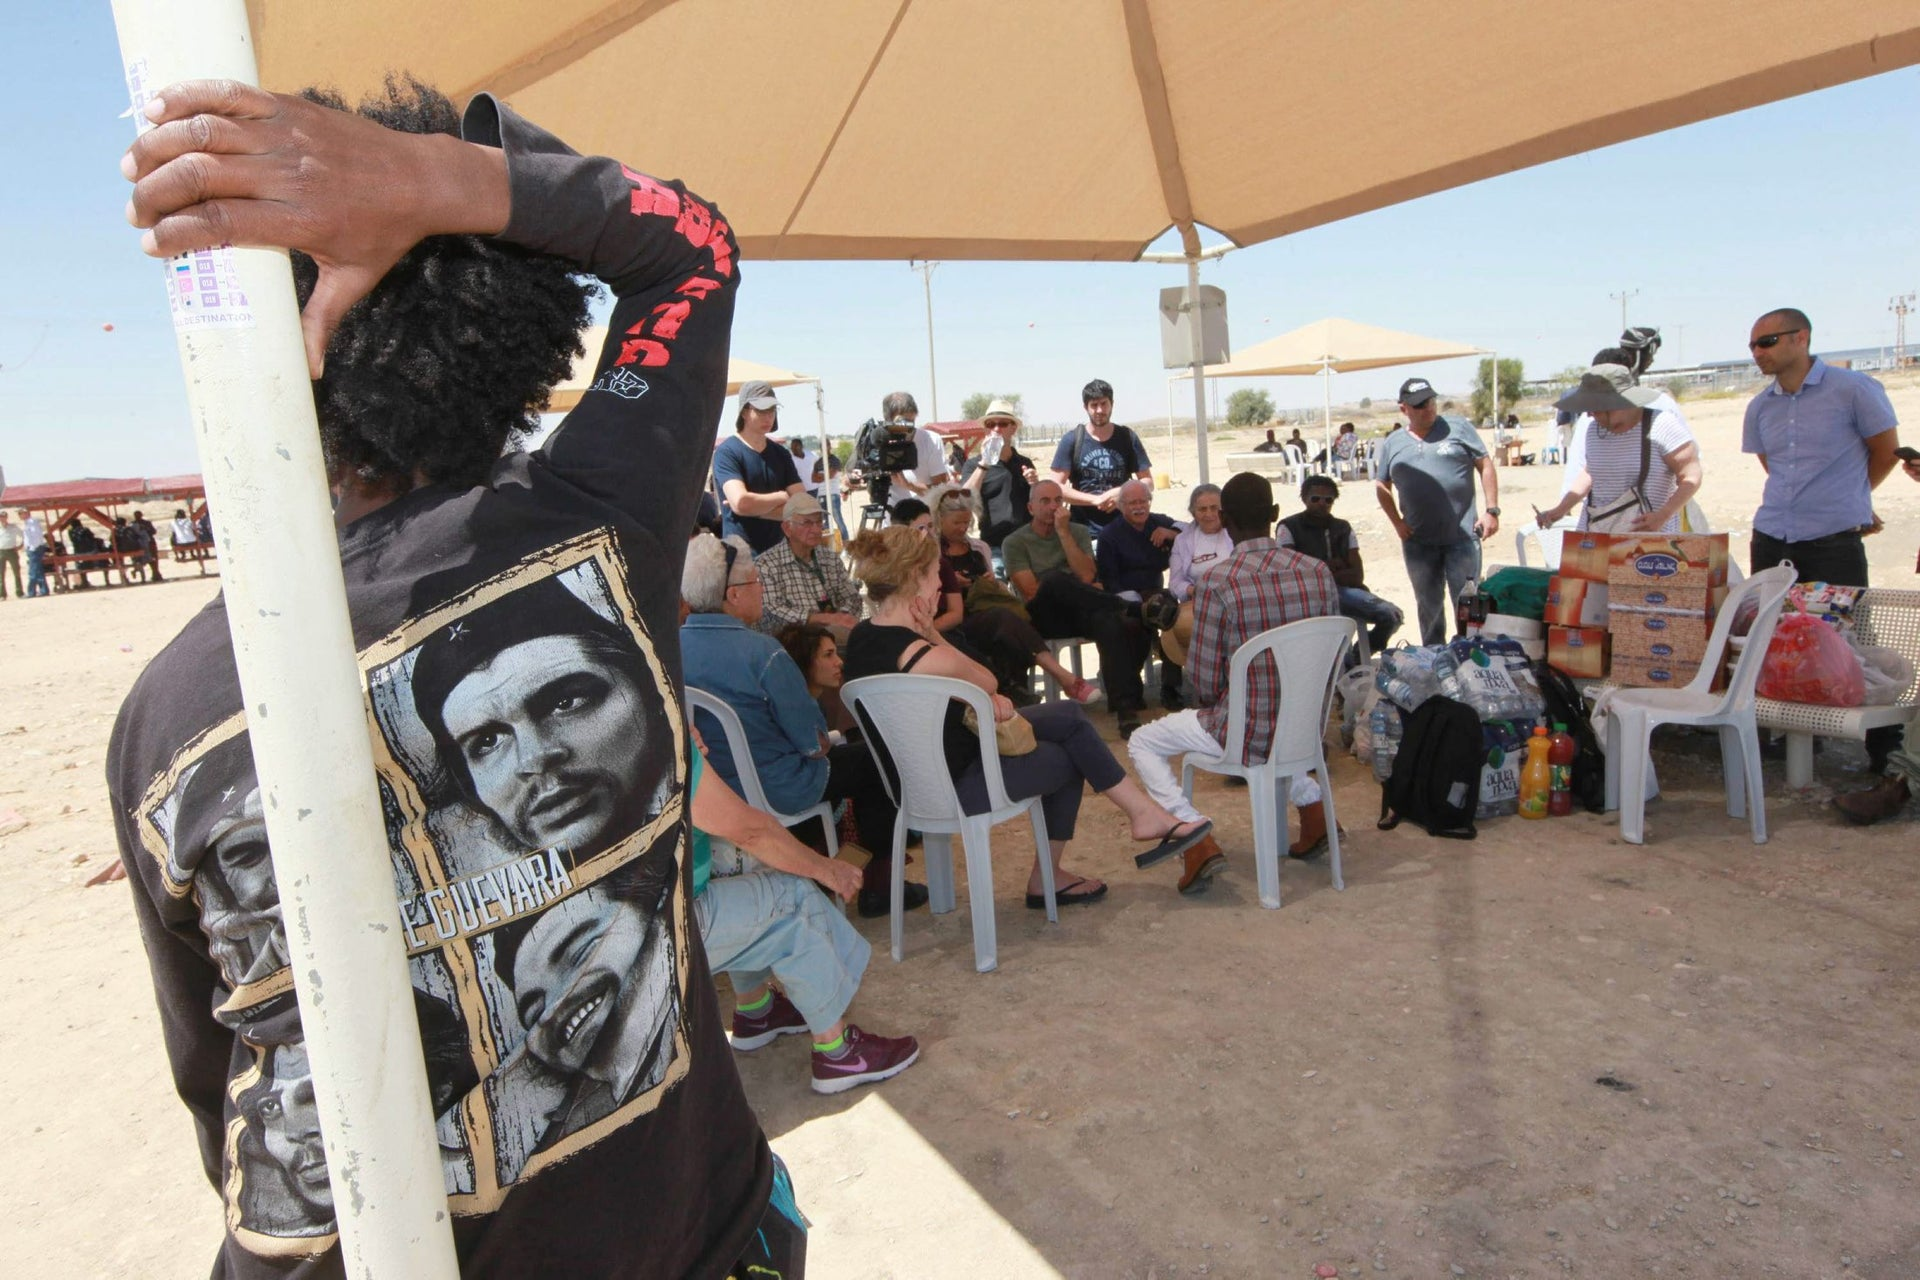 One of the potluck meetings held before the Passover seder at Holot, where asylum seekers were encouraged to share their personal stories, on April 15, 2016.